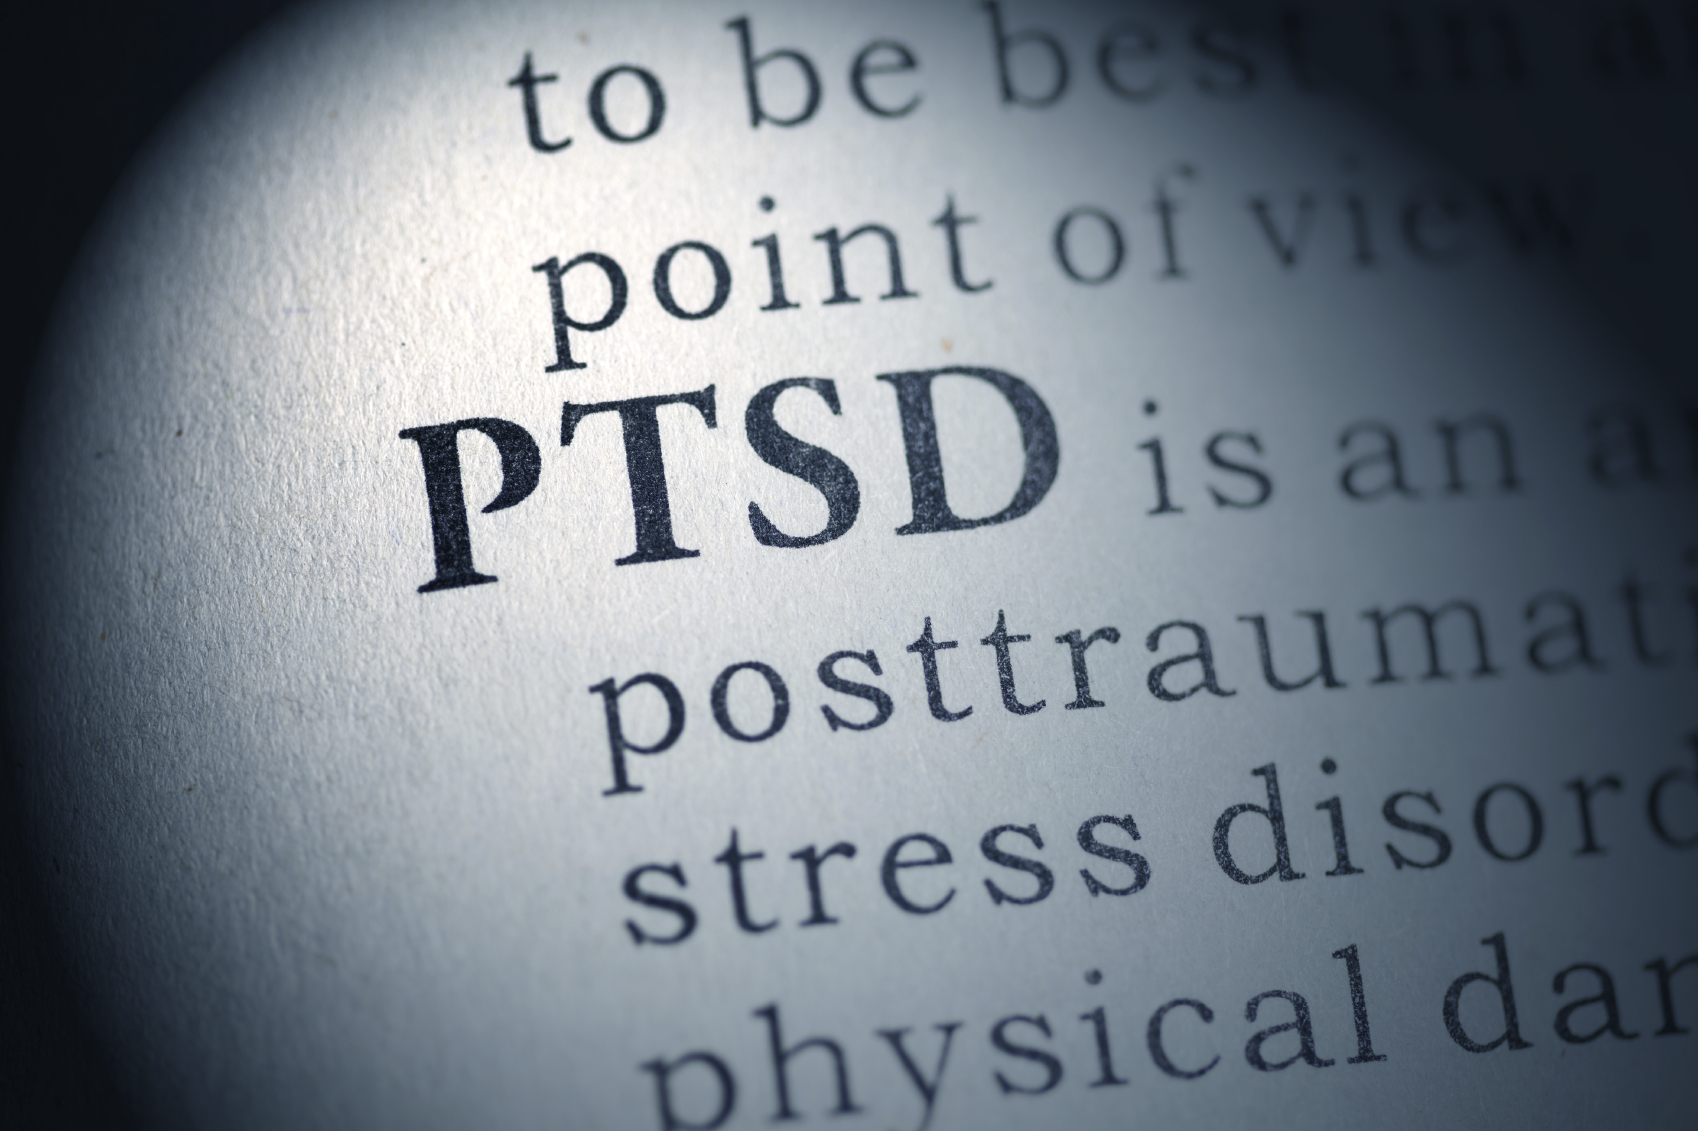 Fake Dictionary, Dictionary definition of the word PTSD. Post Traumatic Stress Disorder